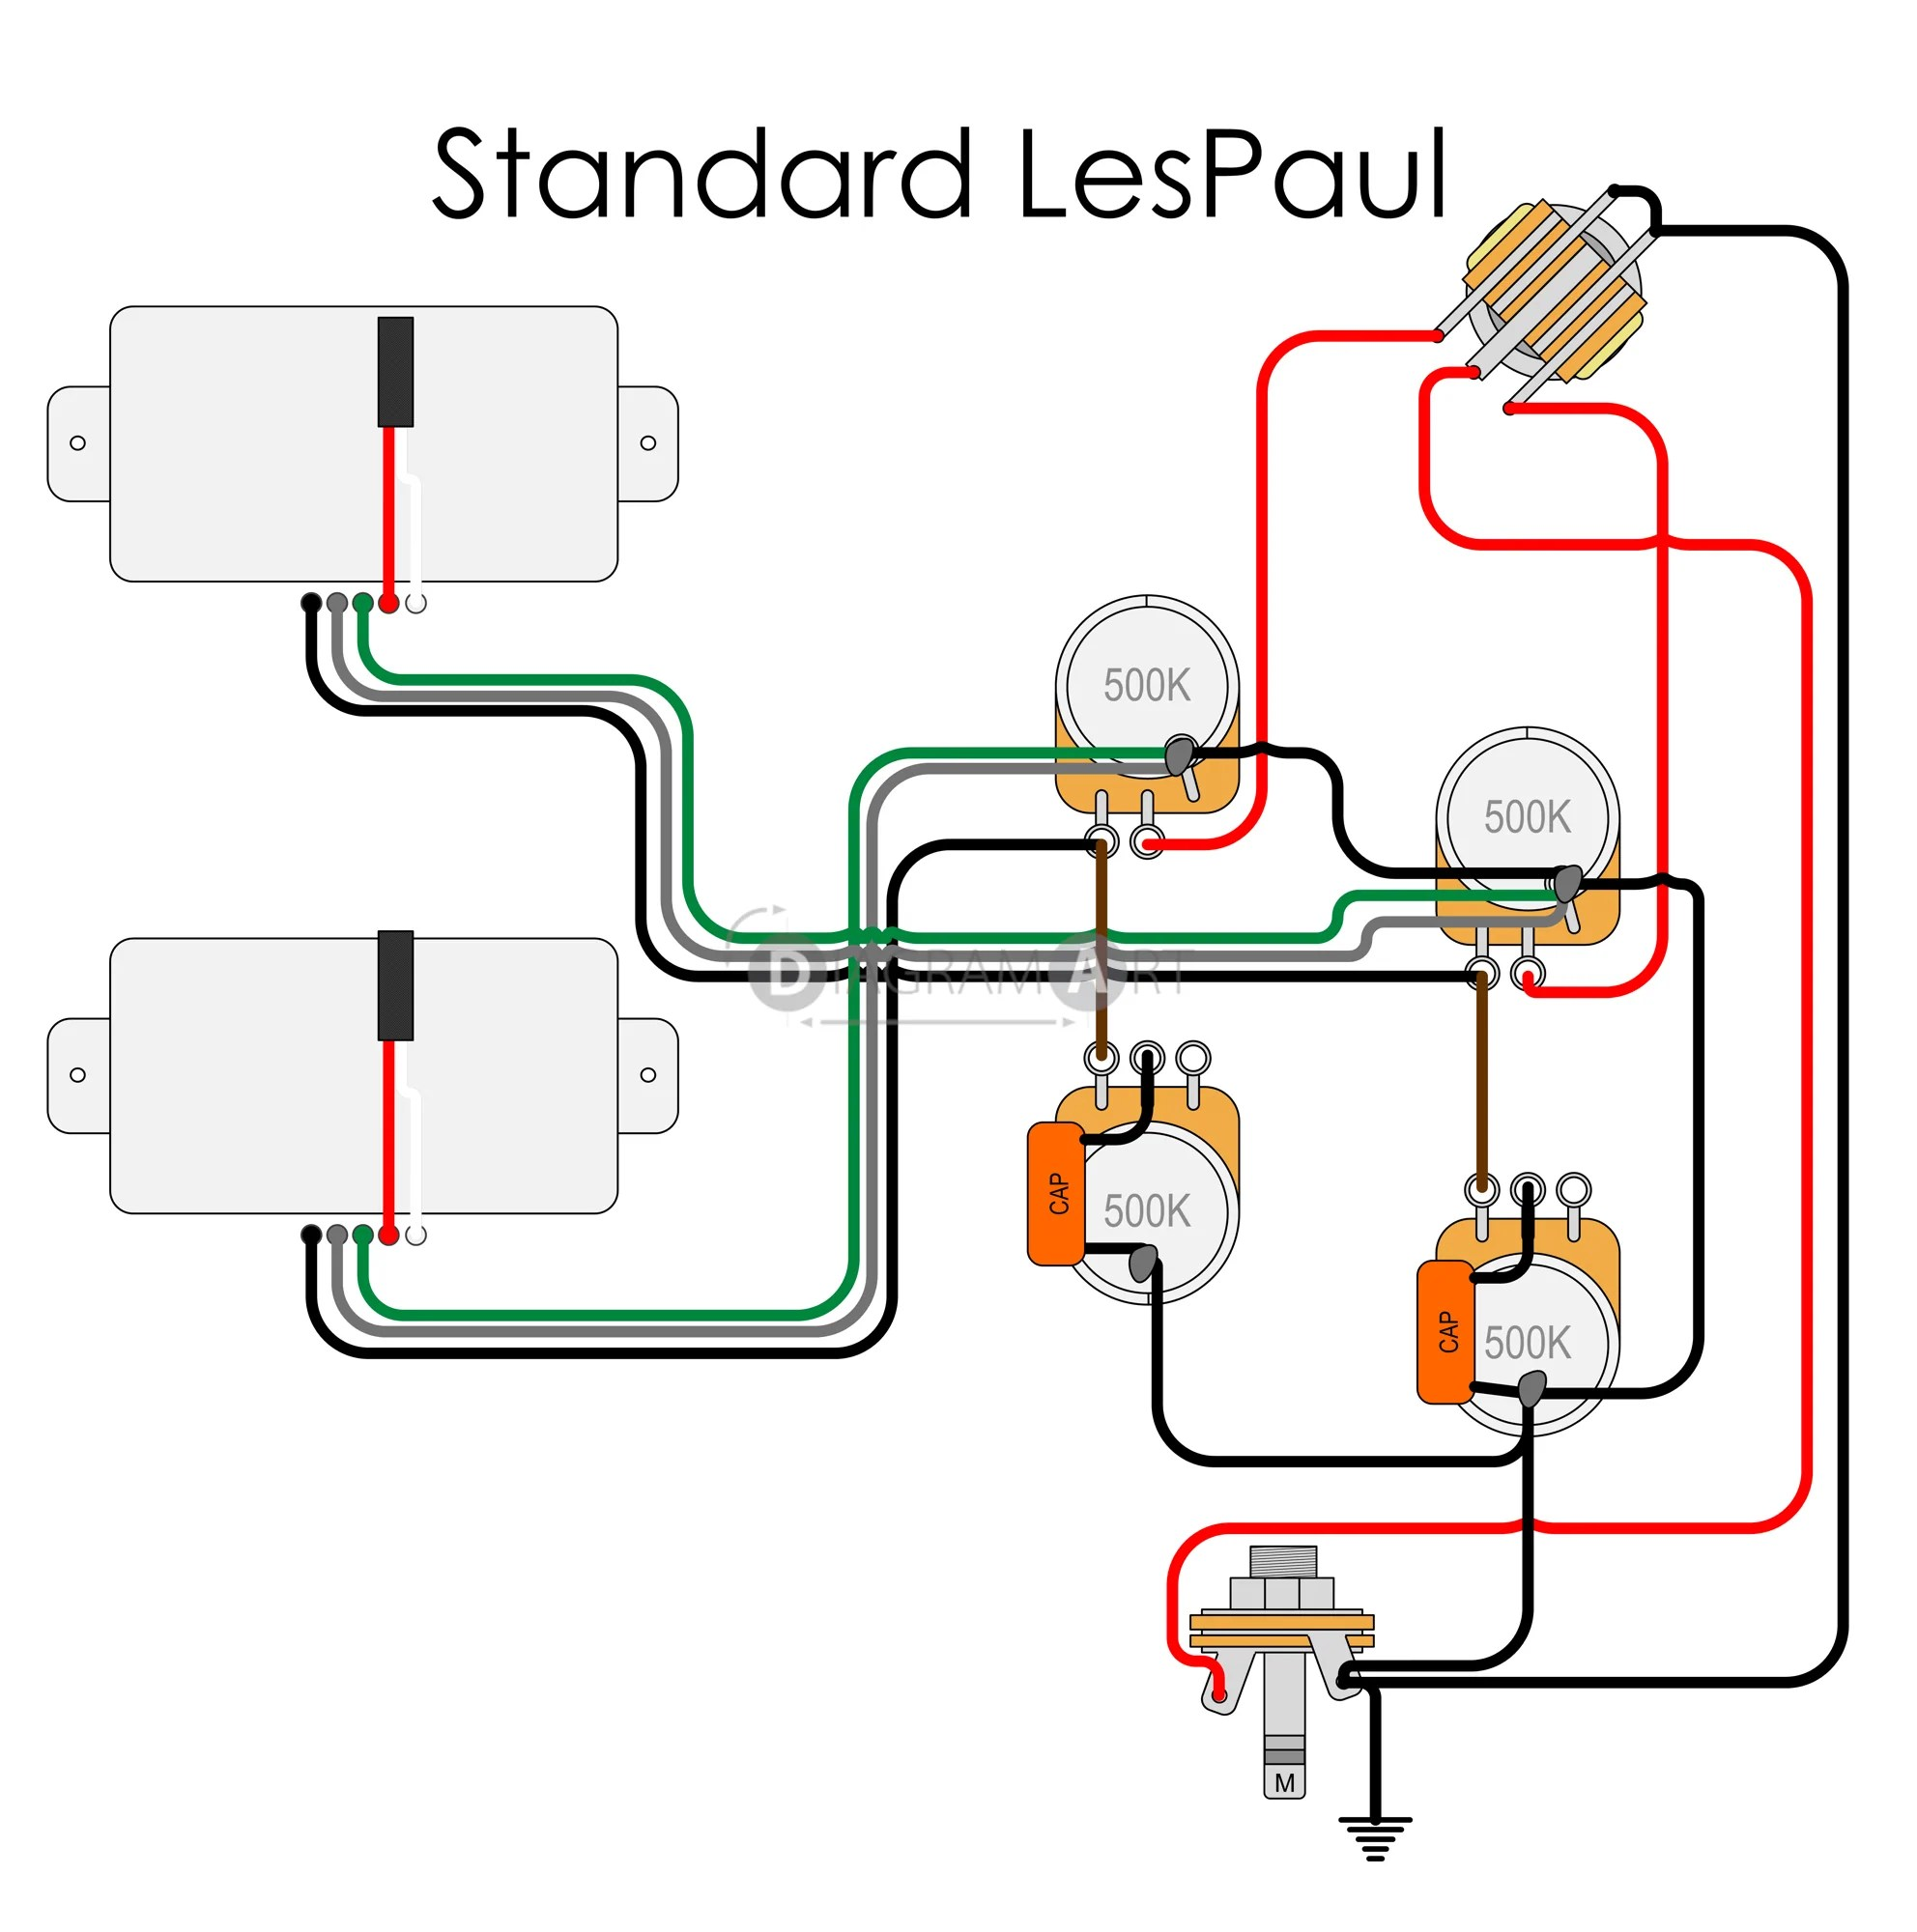 hight resolution of standard les paul wiring diagram wiring diagram expert les paul wiring diagram les paul pro wiring diagram